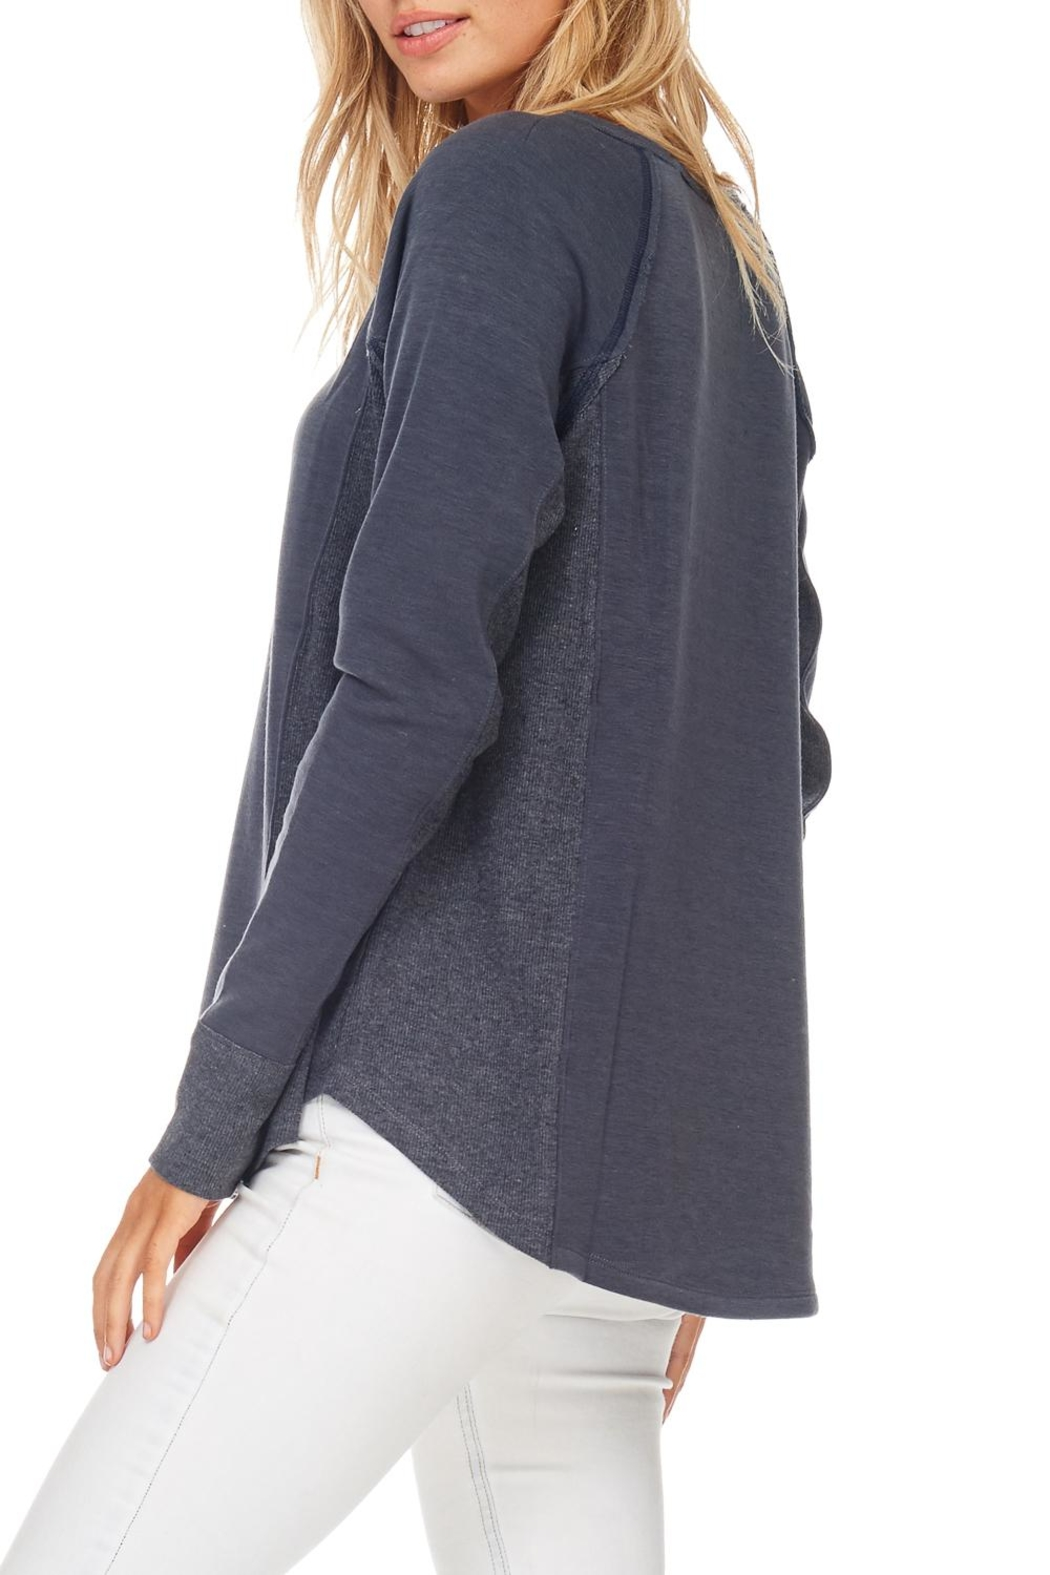 Hem & Thread Solid Pullover Sweater - Back Cropped Image